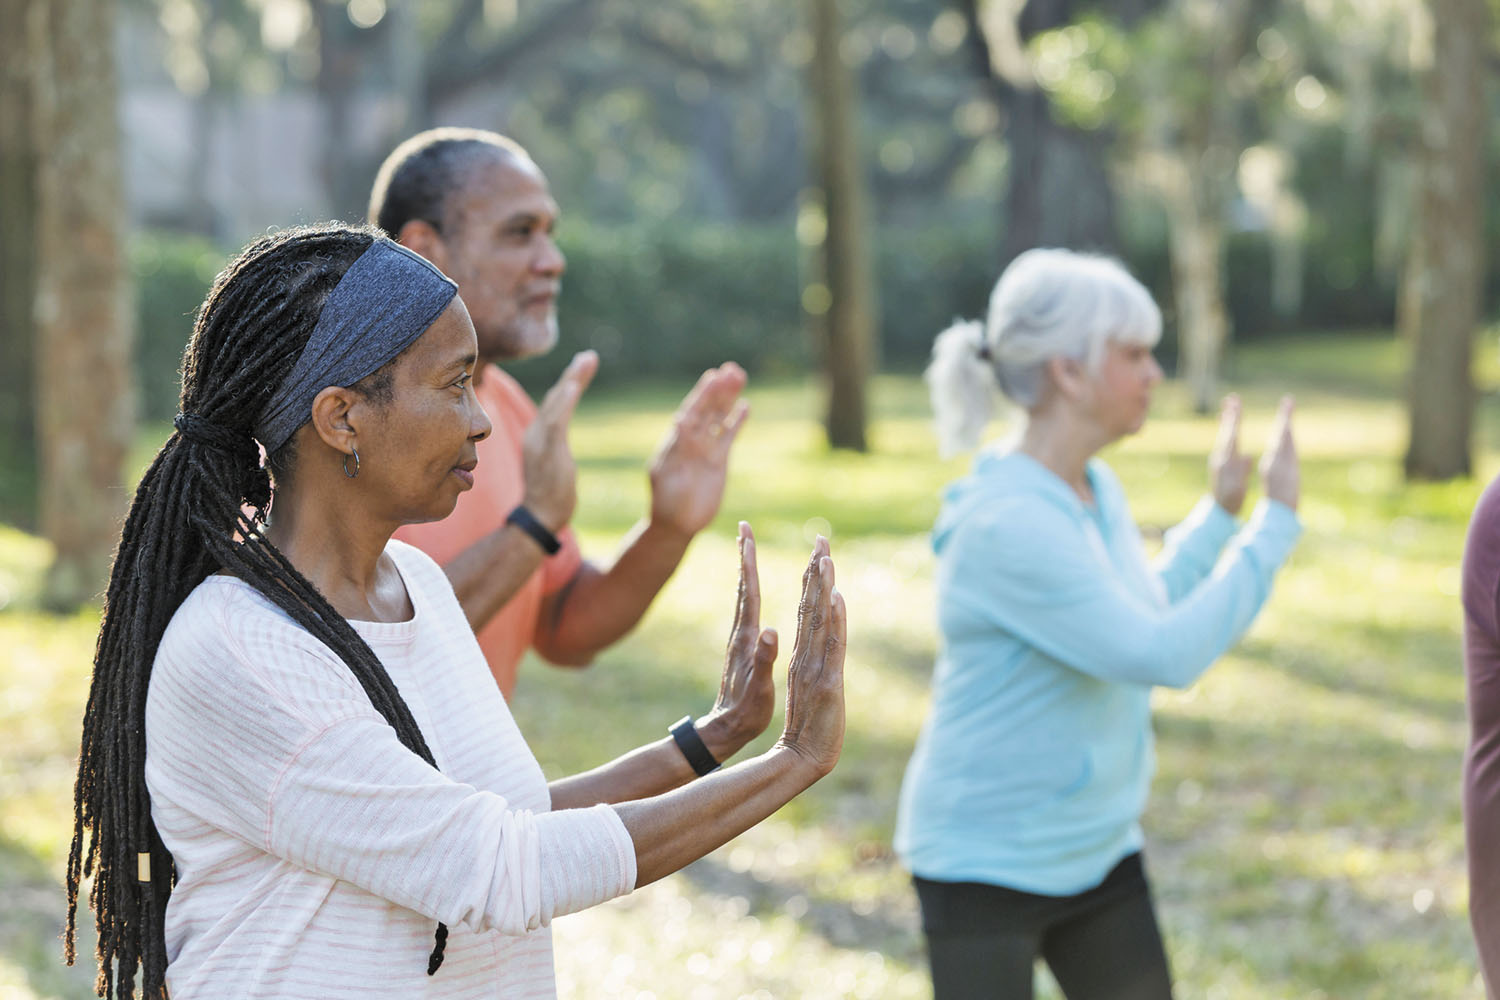 Tai chi, the winner at warding off falls - Harvard Health